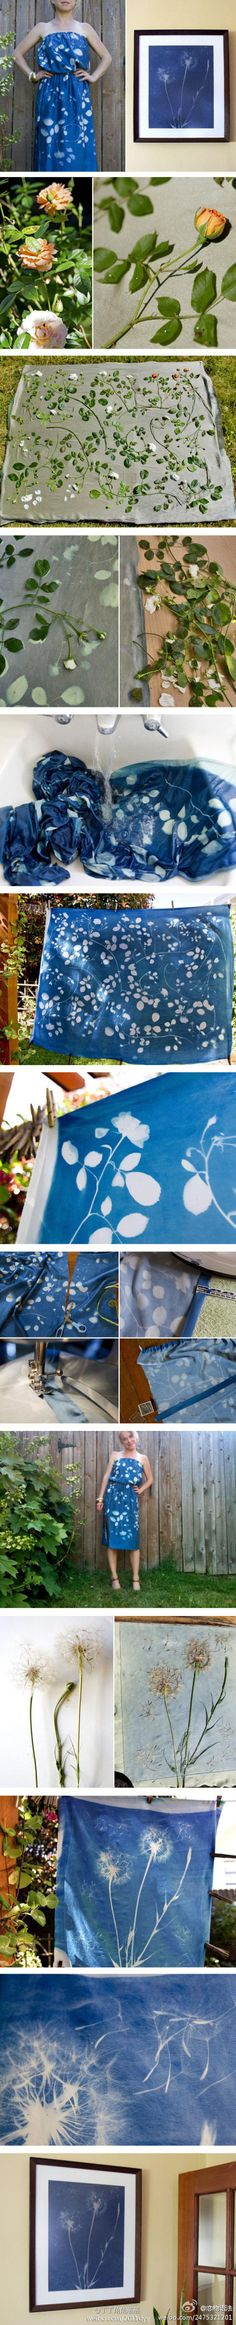 creating a botanical pattern on cyanotype fabric or paper (Sun-dyed fabric)